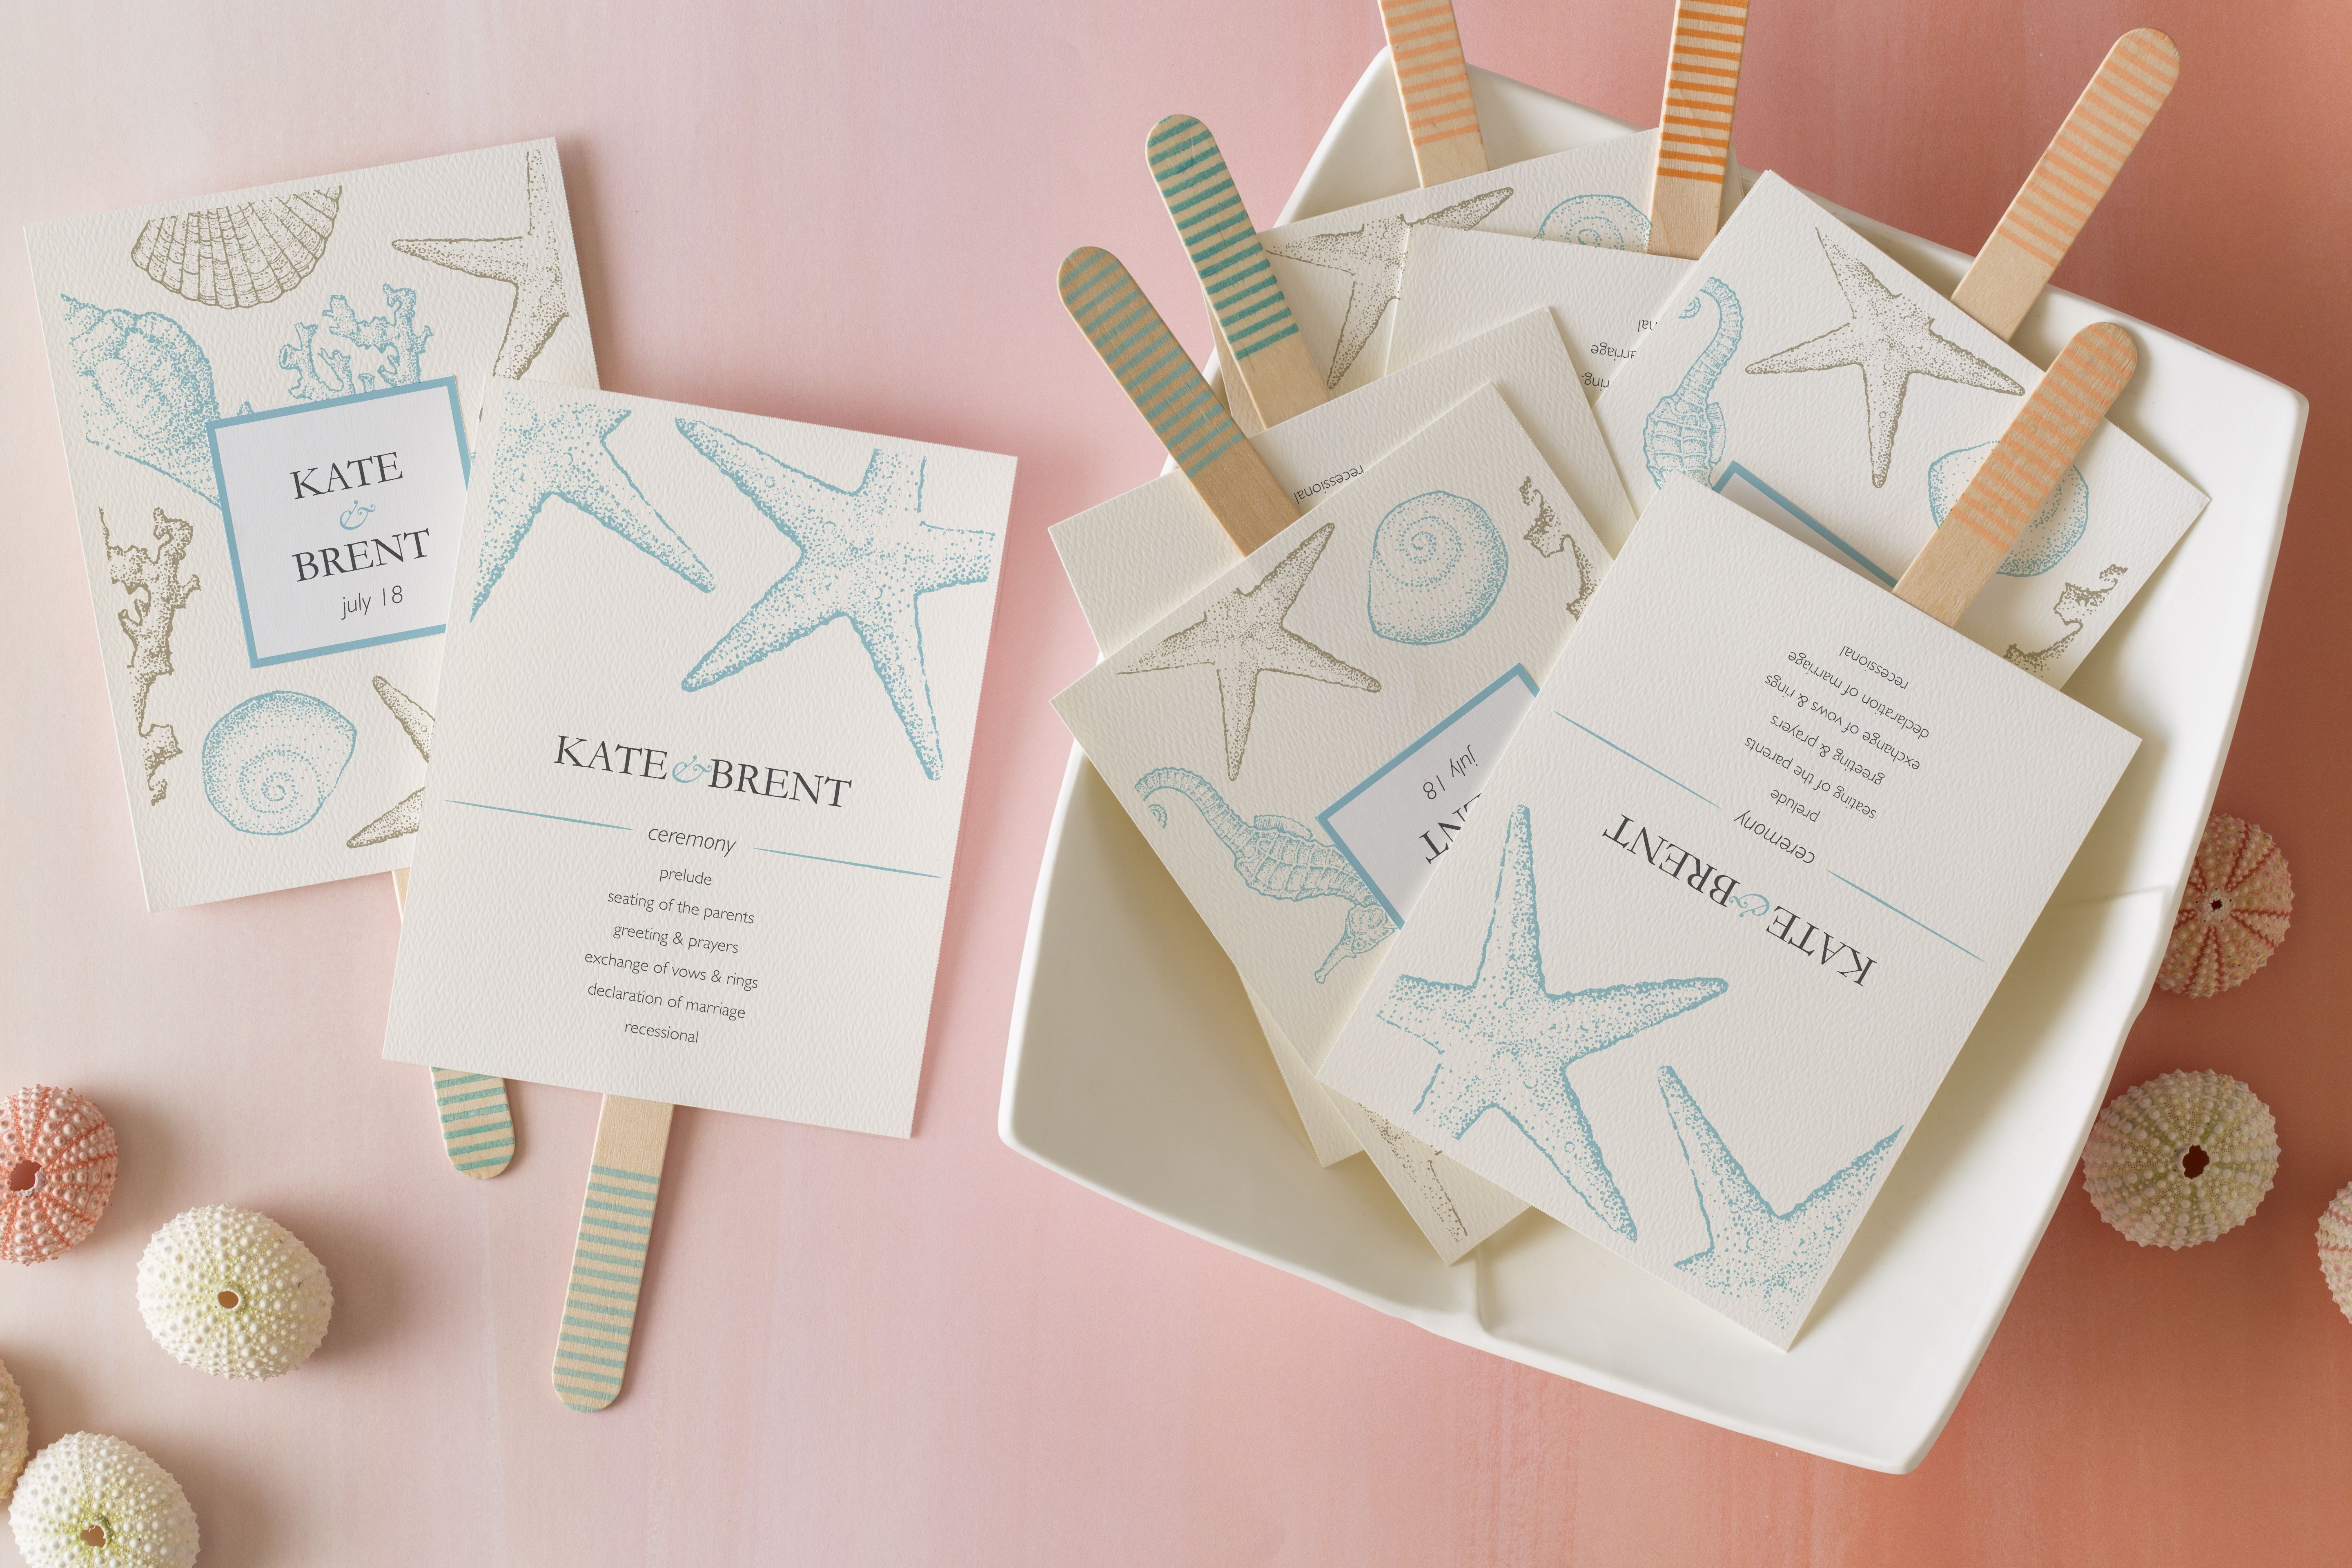 Seasonal Wedding Ideas: DIY fans for summer weddings! (via Avery ...